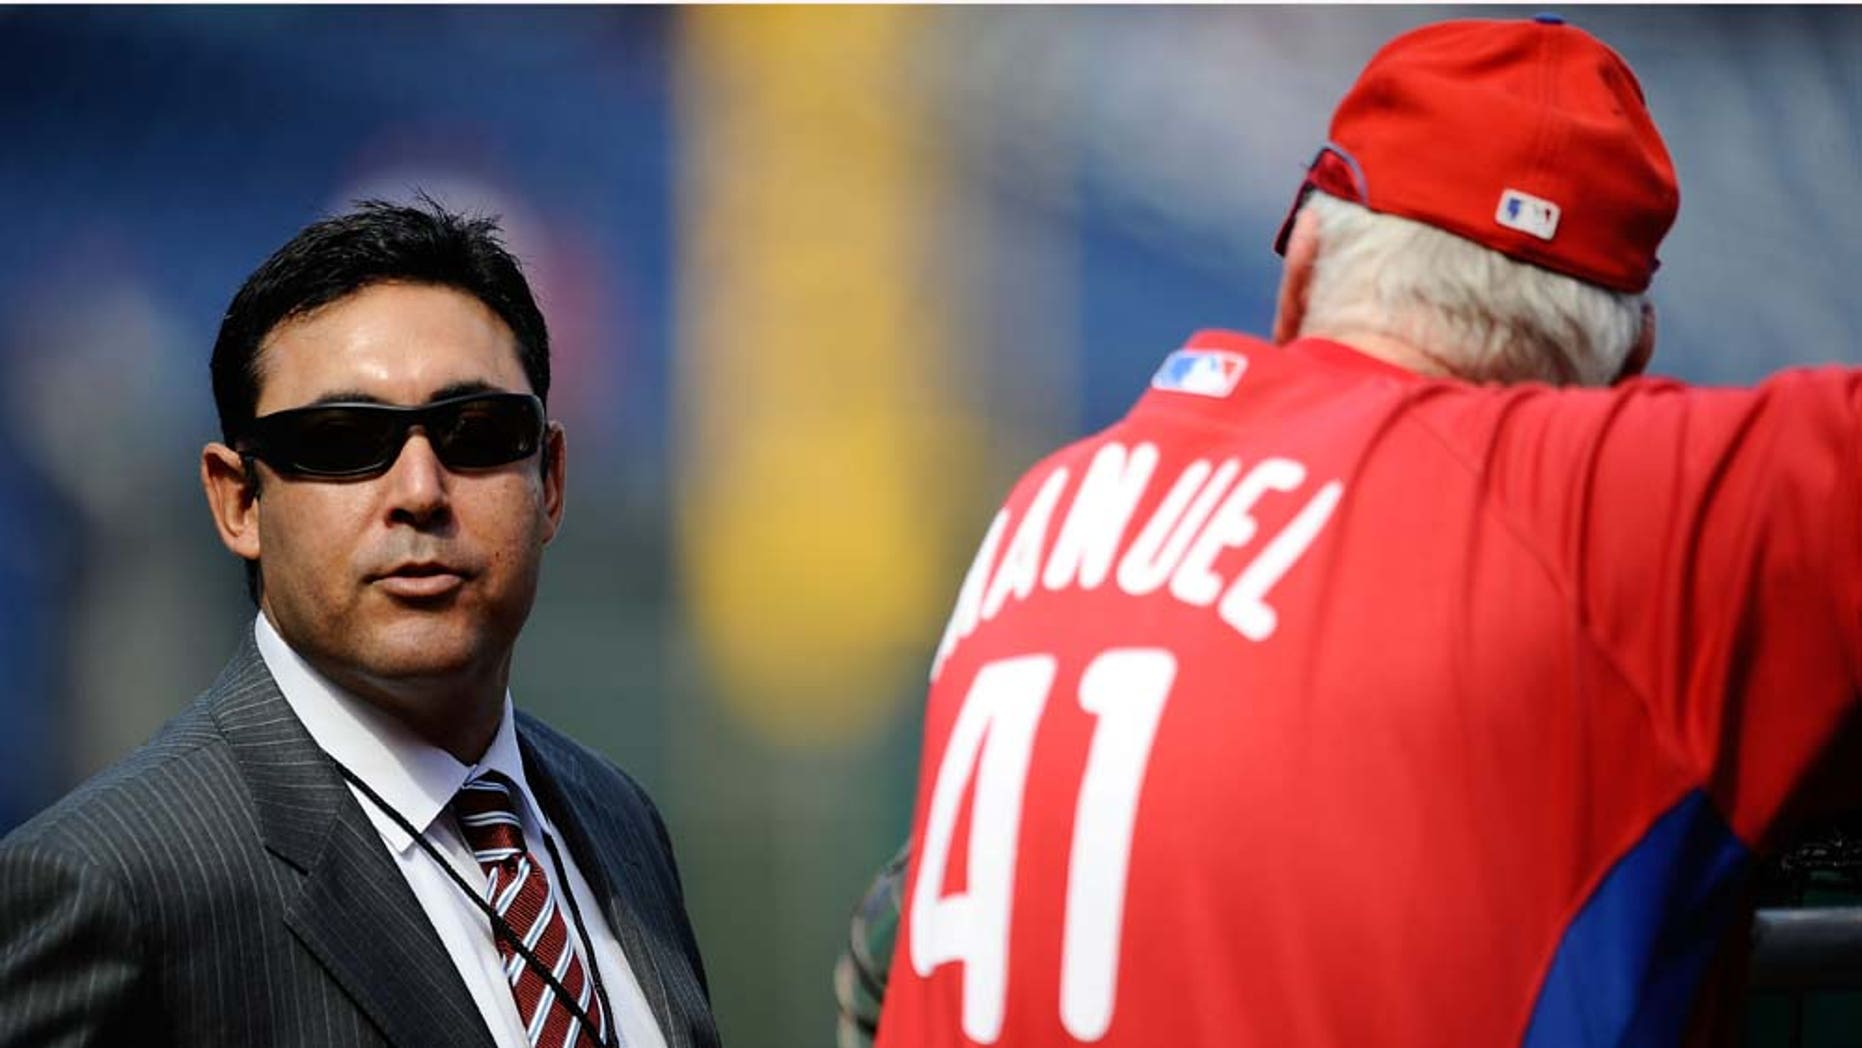 PHILADELPHIA - OCTOBER 08:  General Manager Ruben Amaro Jr. of the Philadelphia Phillies talks with Phillies manager Charlie Manuel #41 on the field during batting practice prior to Game Two of the NLDS against the Colorado Rockies during the 2009 MLB Playoffs at Citizens Bank Park on October 8, 2009 in Philadelphia, Pennsylvania.  (Photo by Jeff Zelevansky/Getty Images)